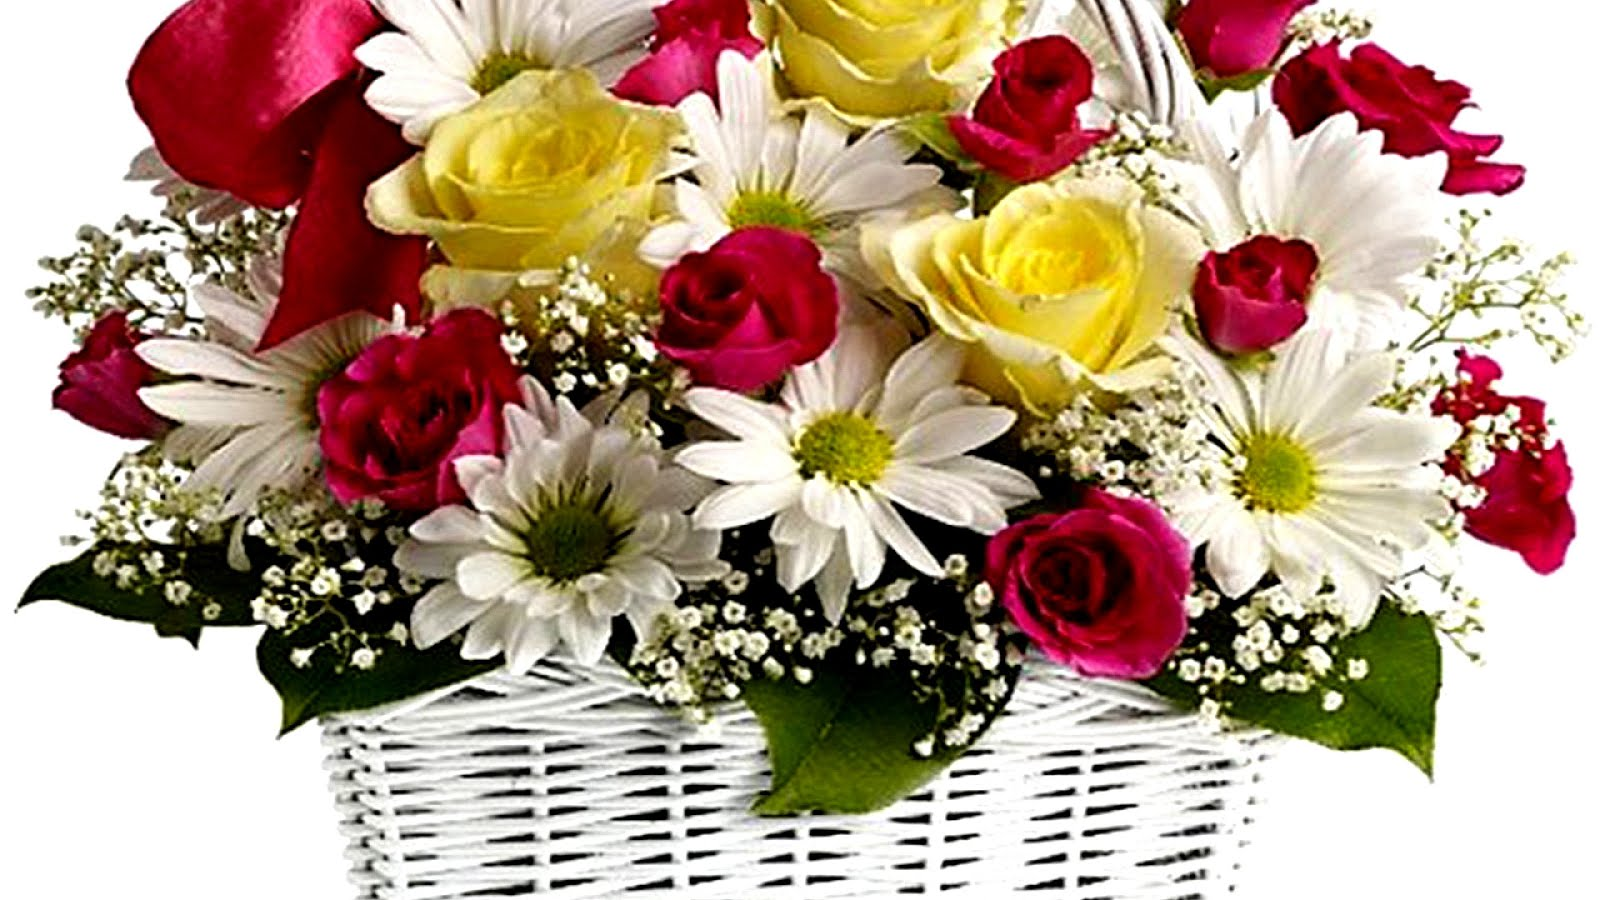 Online Flower Bouquet Delivery In Chennai Gallery Flower Wallpaper Hd